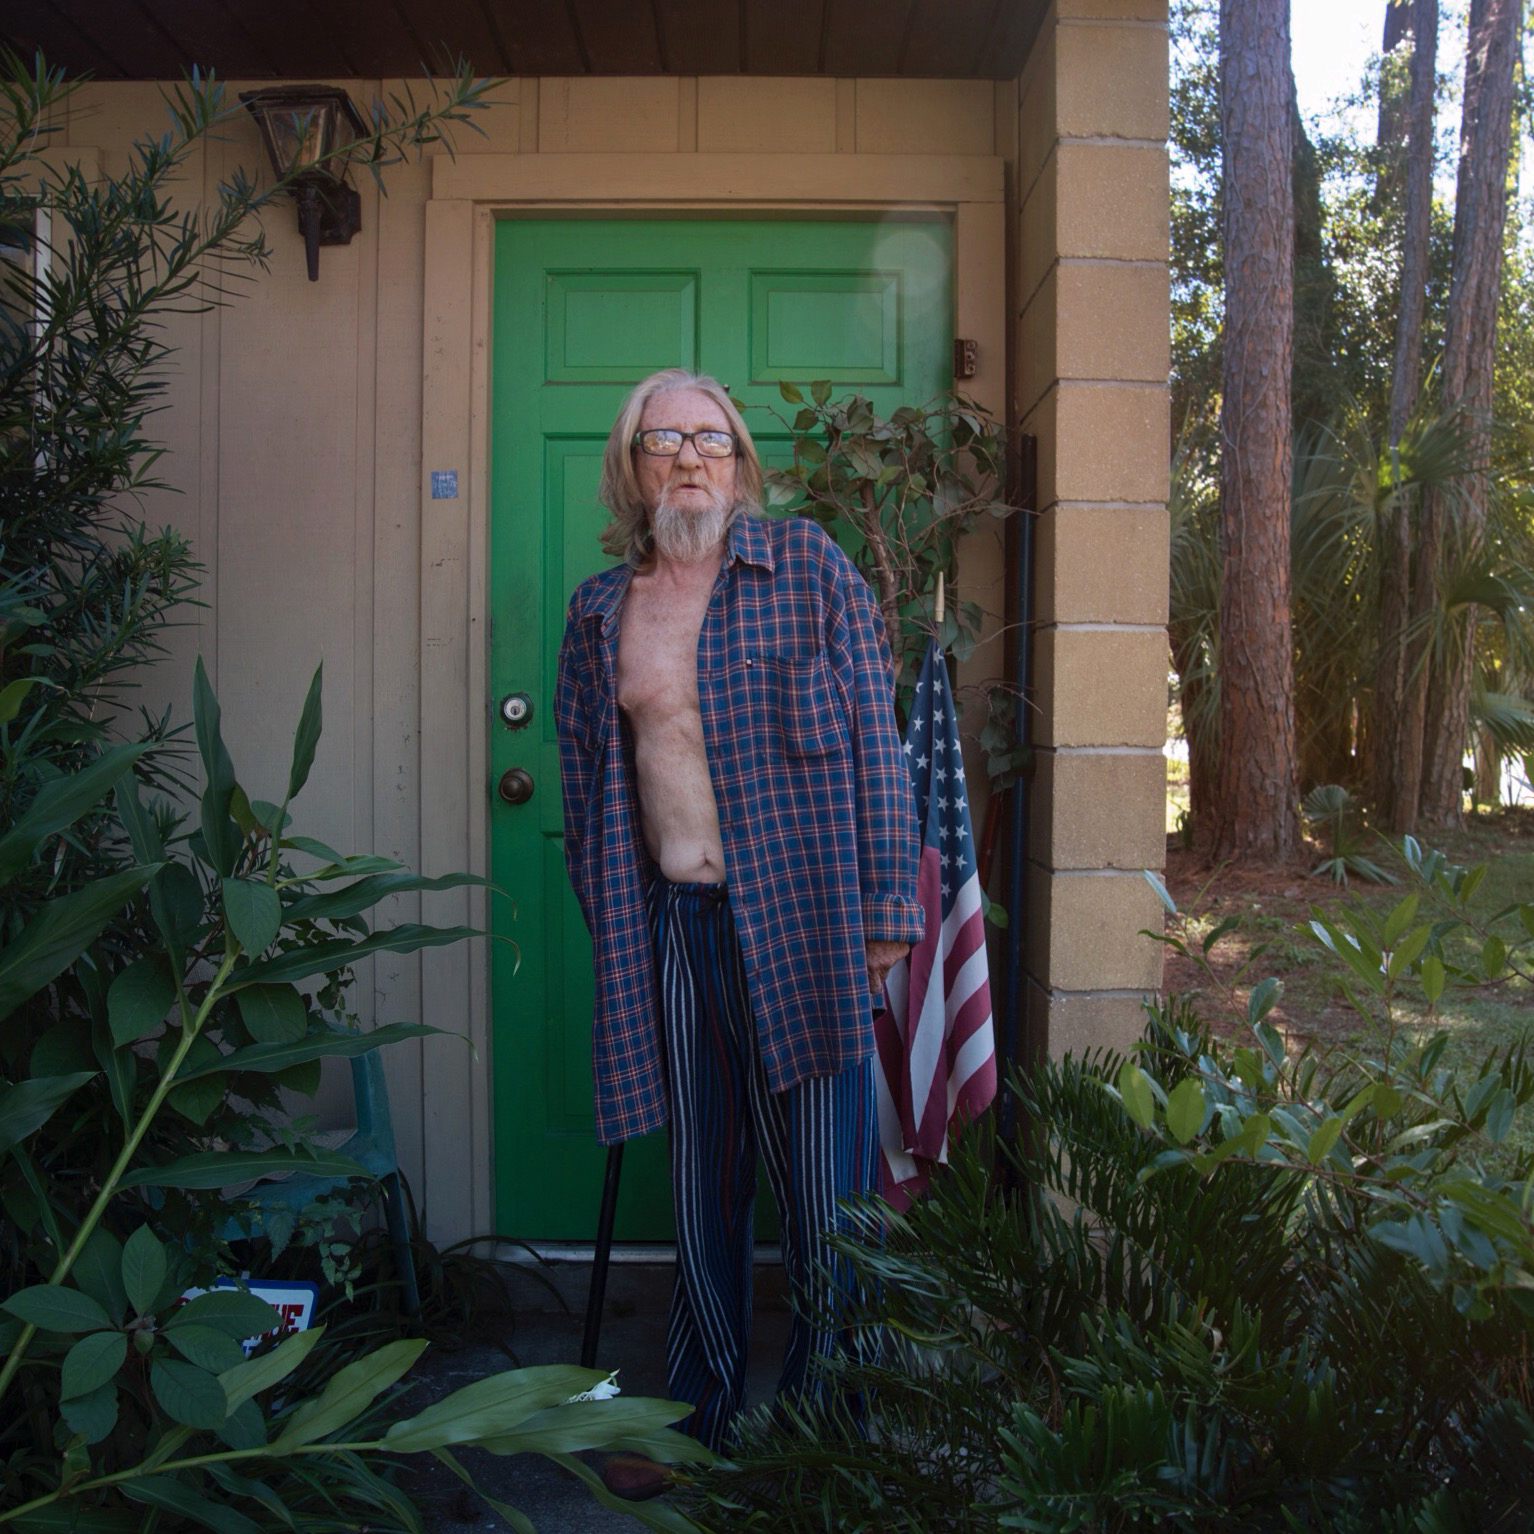 Larry Presher is a 69-year-old veteran of the Vietnam War. He has cancer of the bladder, an abdominal aortic aneurysm and a broken arm that cannot be repaired. He lives in Gainsville, Florida, and says he and many other veterans he knows must sell their medications each month to drug addicts in order to pay their rent.